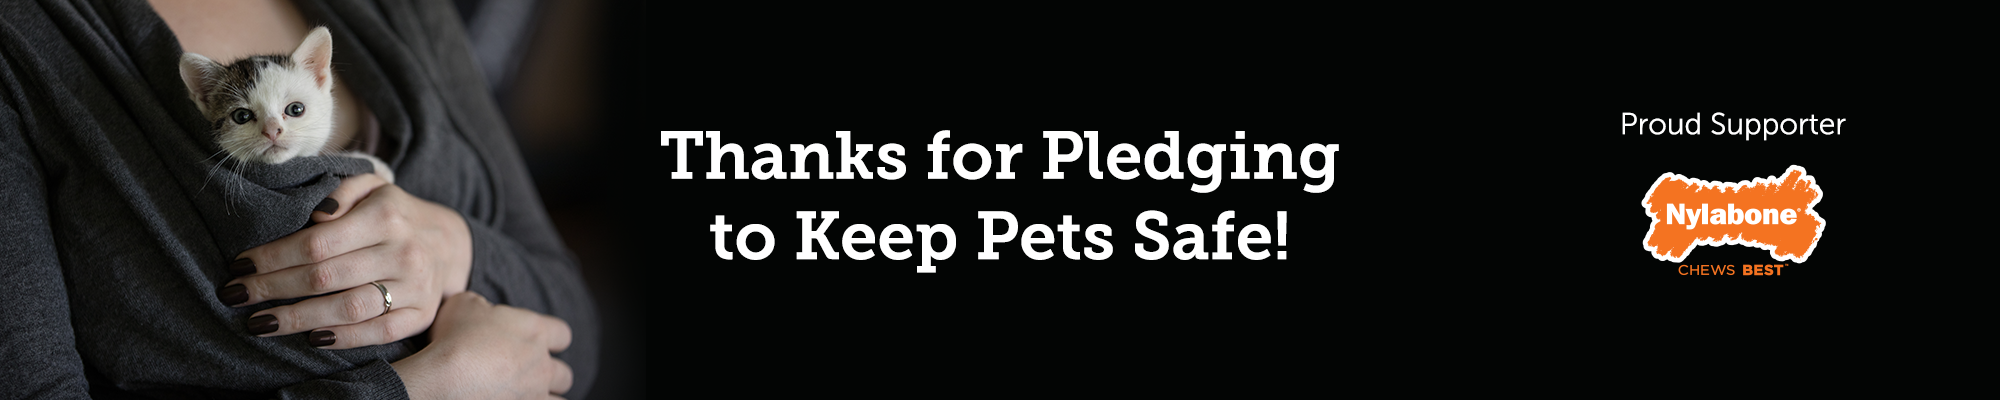 Thanks for Pledging to Keep Pets Safe!